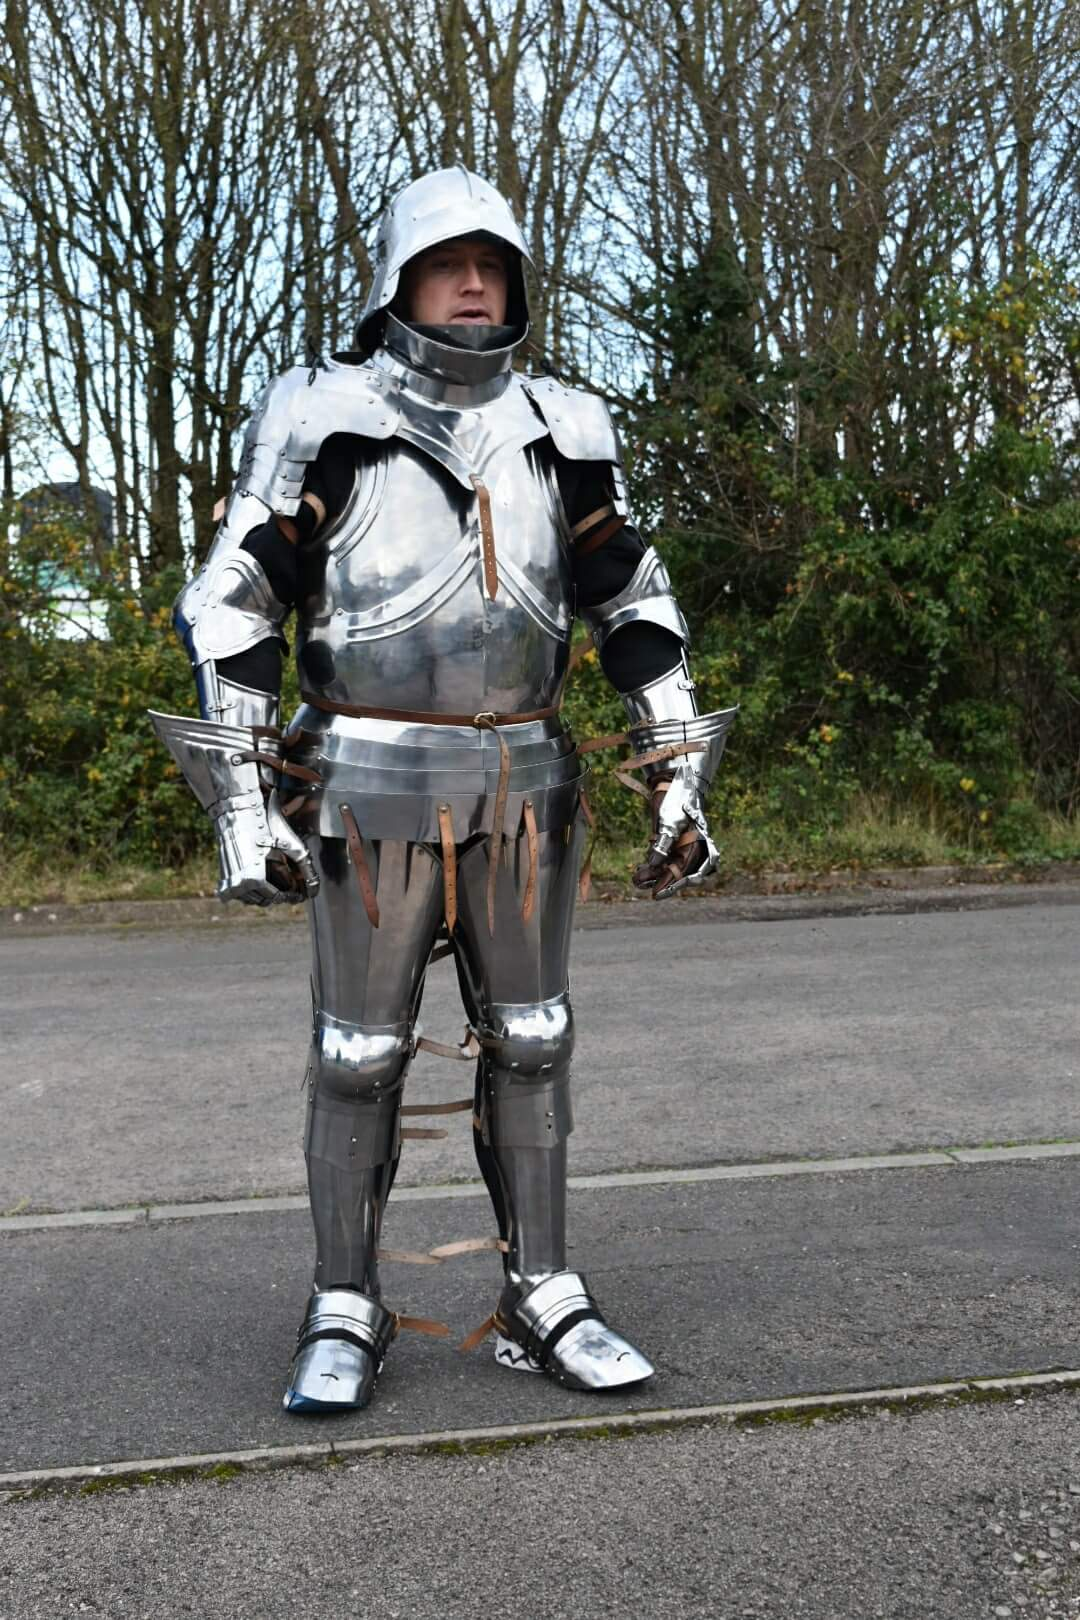 Army sergeant Paul Beddows, 33, will take on the Virgin Money London Marathon in a suit of armour. He is fundraising for Armed Forces charity SSAFA. (SSAFA/ PA)